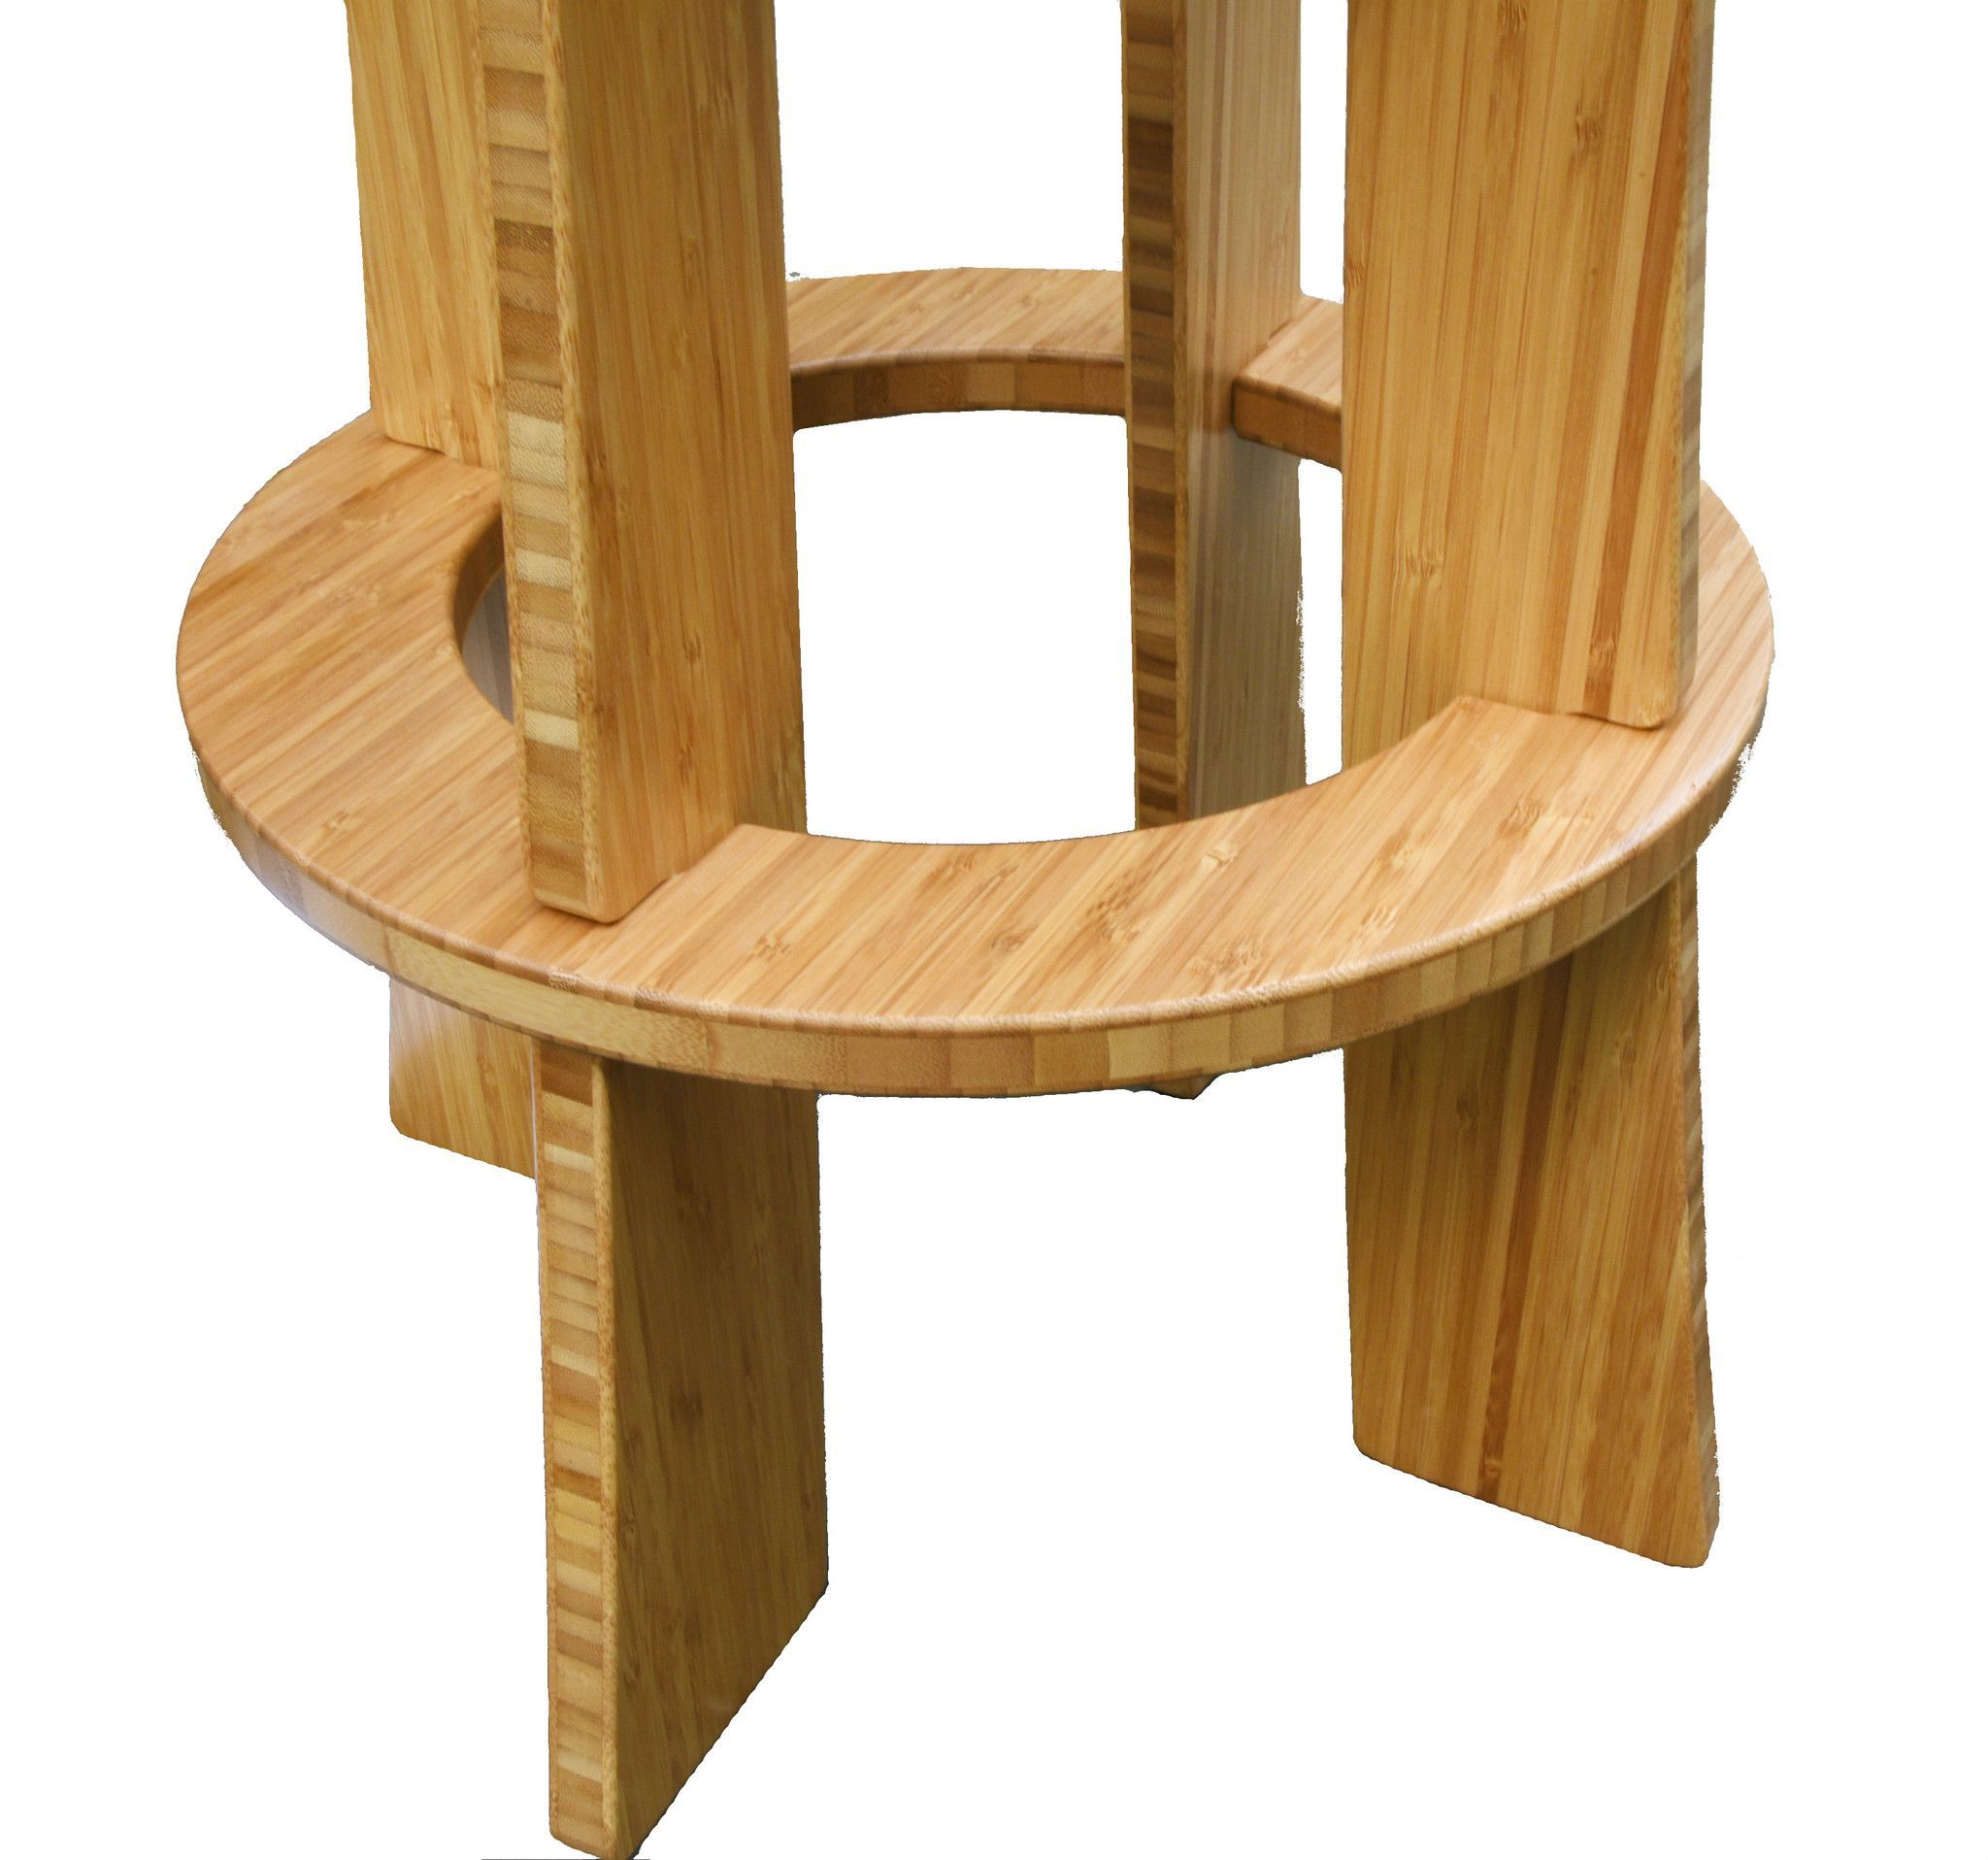 bamboo spin mid seat stool stools a century have take pin and bar